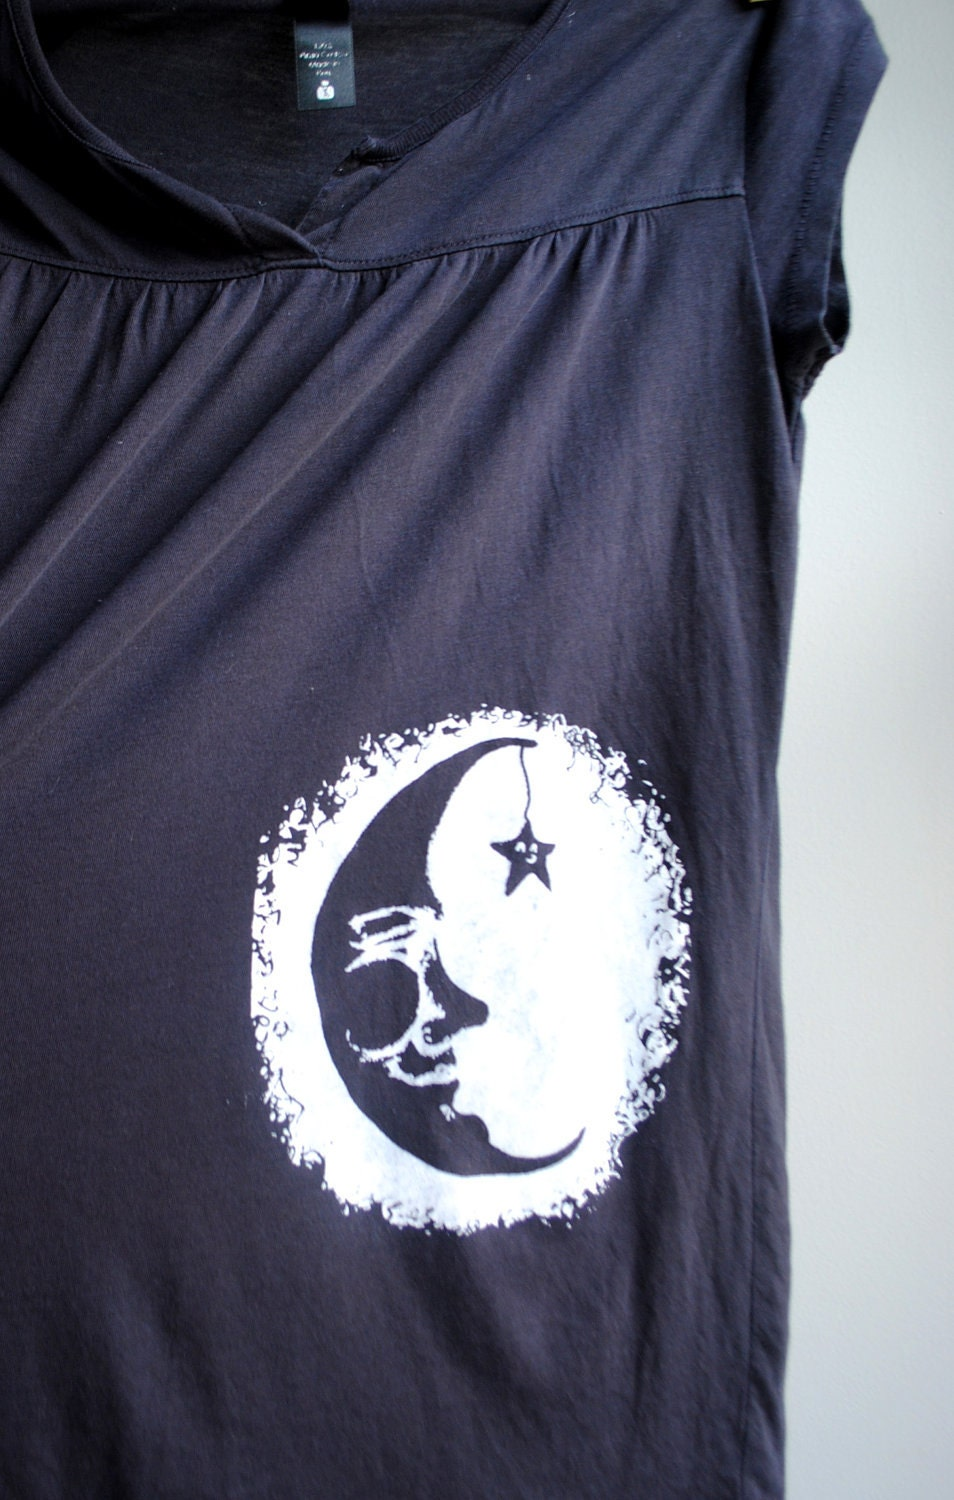 Man in the Moon with Twinkling Star Screen Printed Babydoll Shirt, Charcoal with White Ink, Womens Small